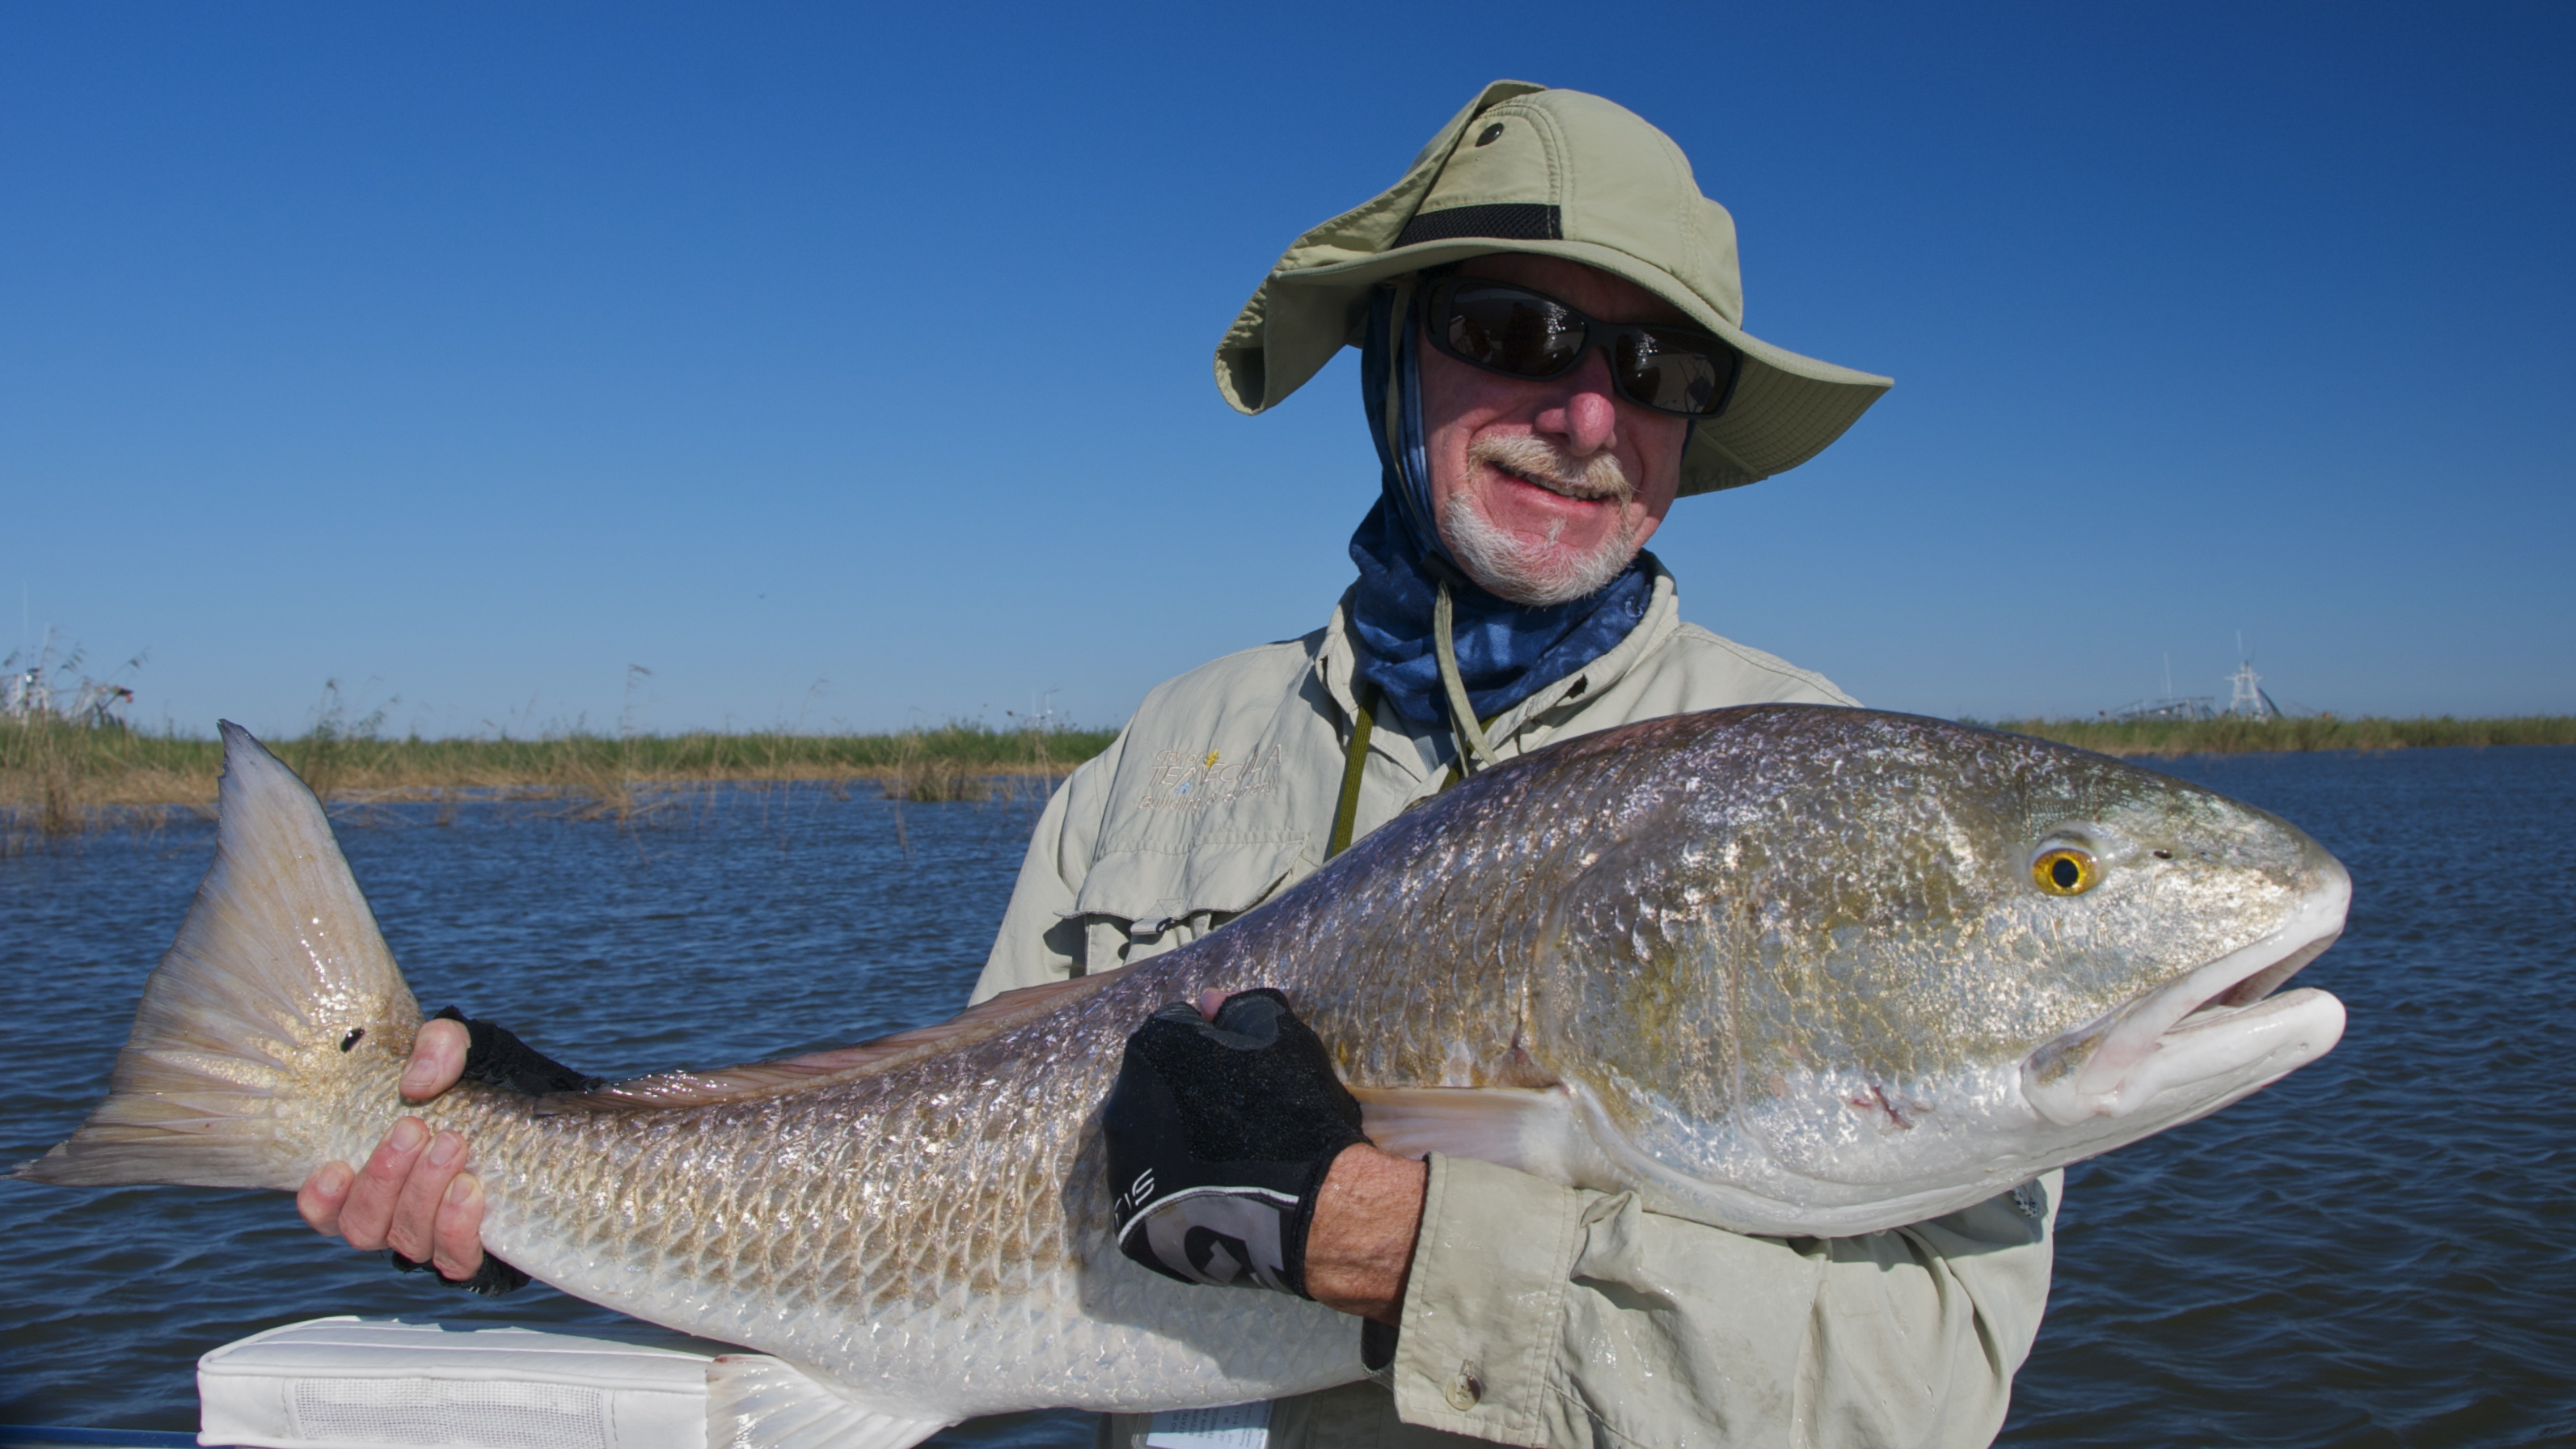 Fly fishing for redfish in november shallow south for Fly fishing redfish